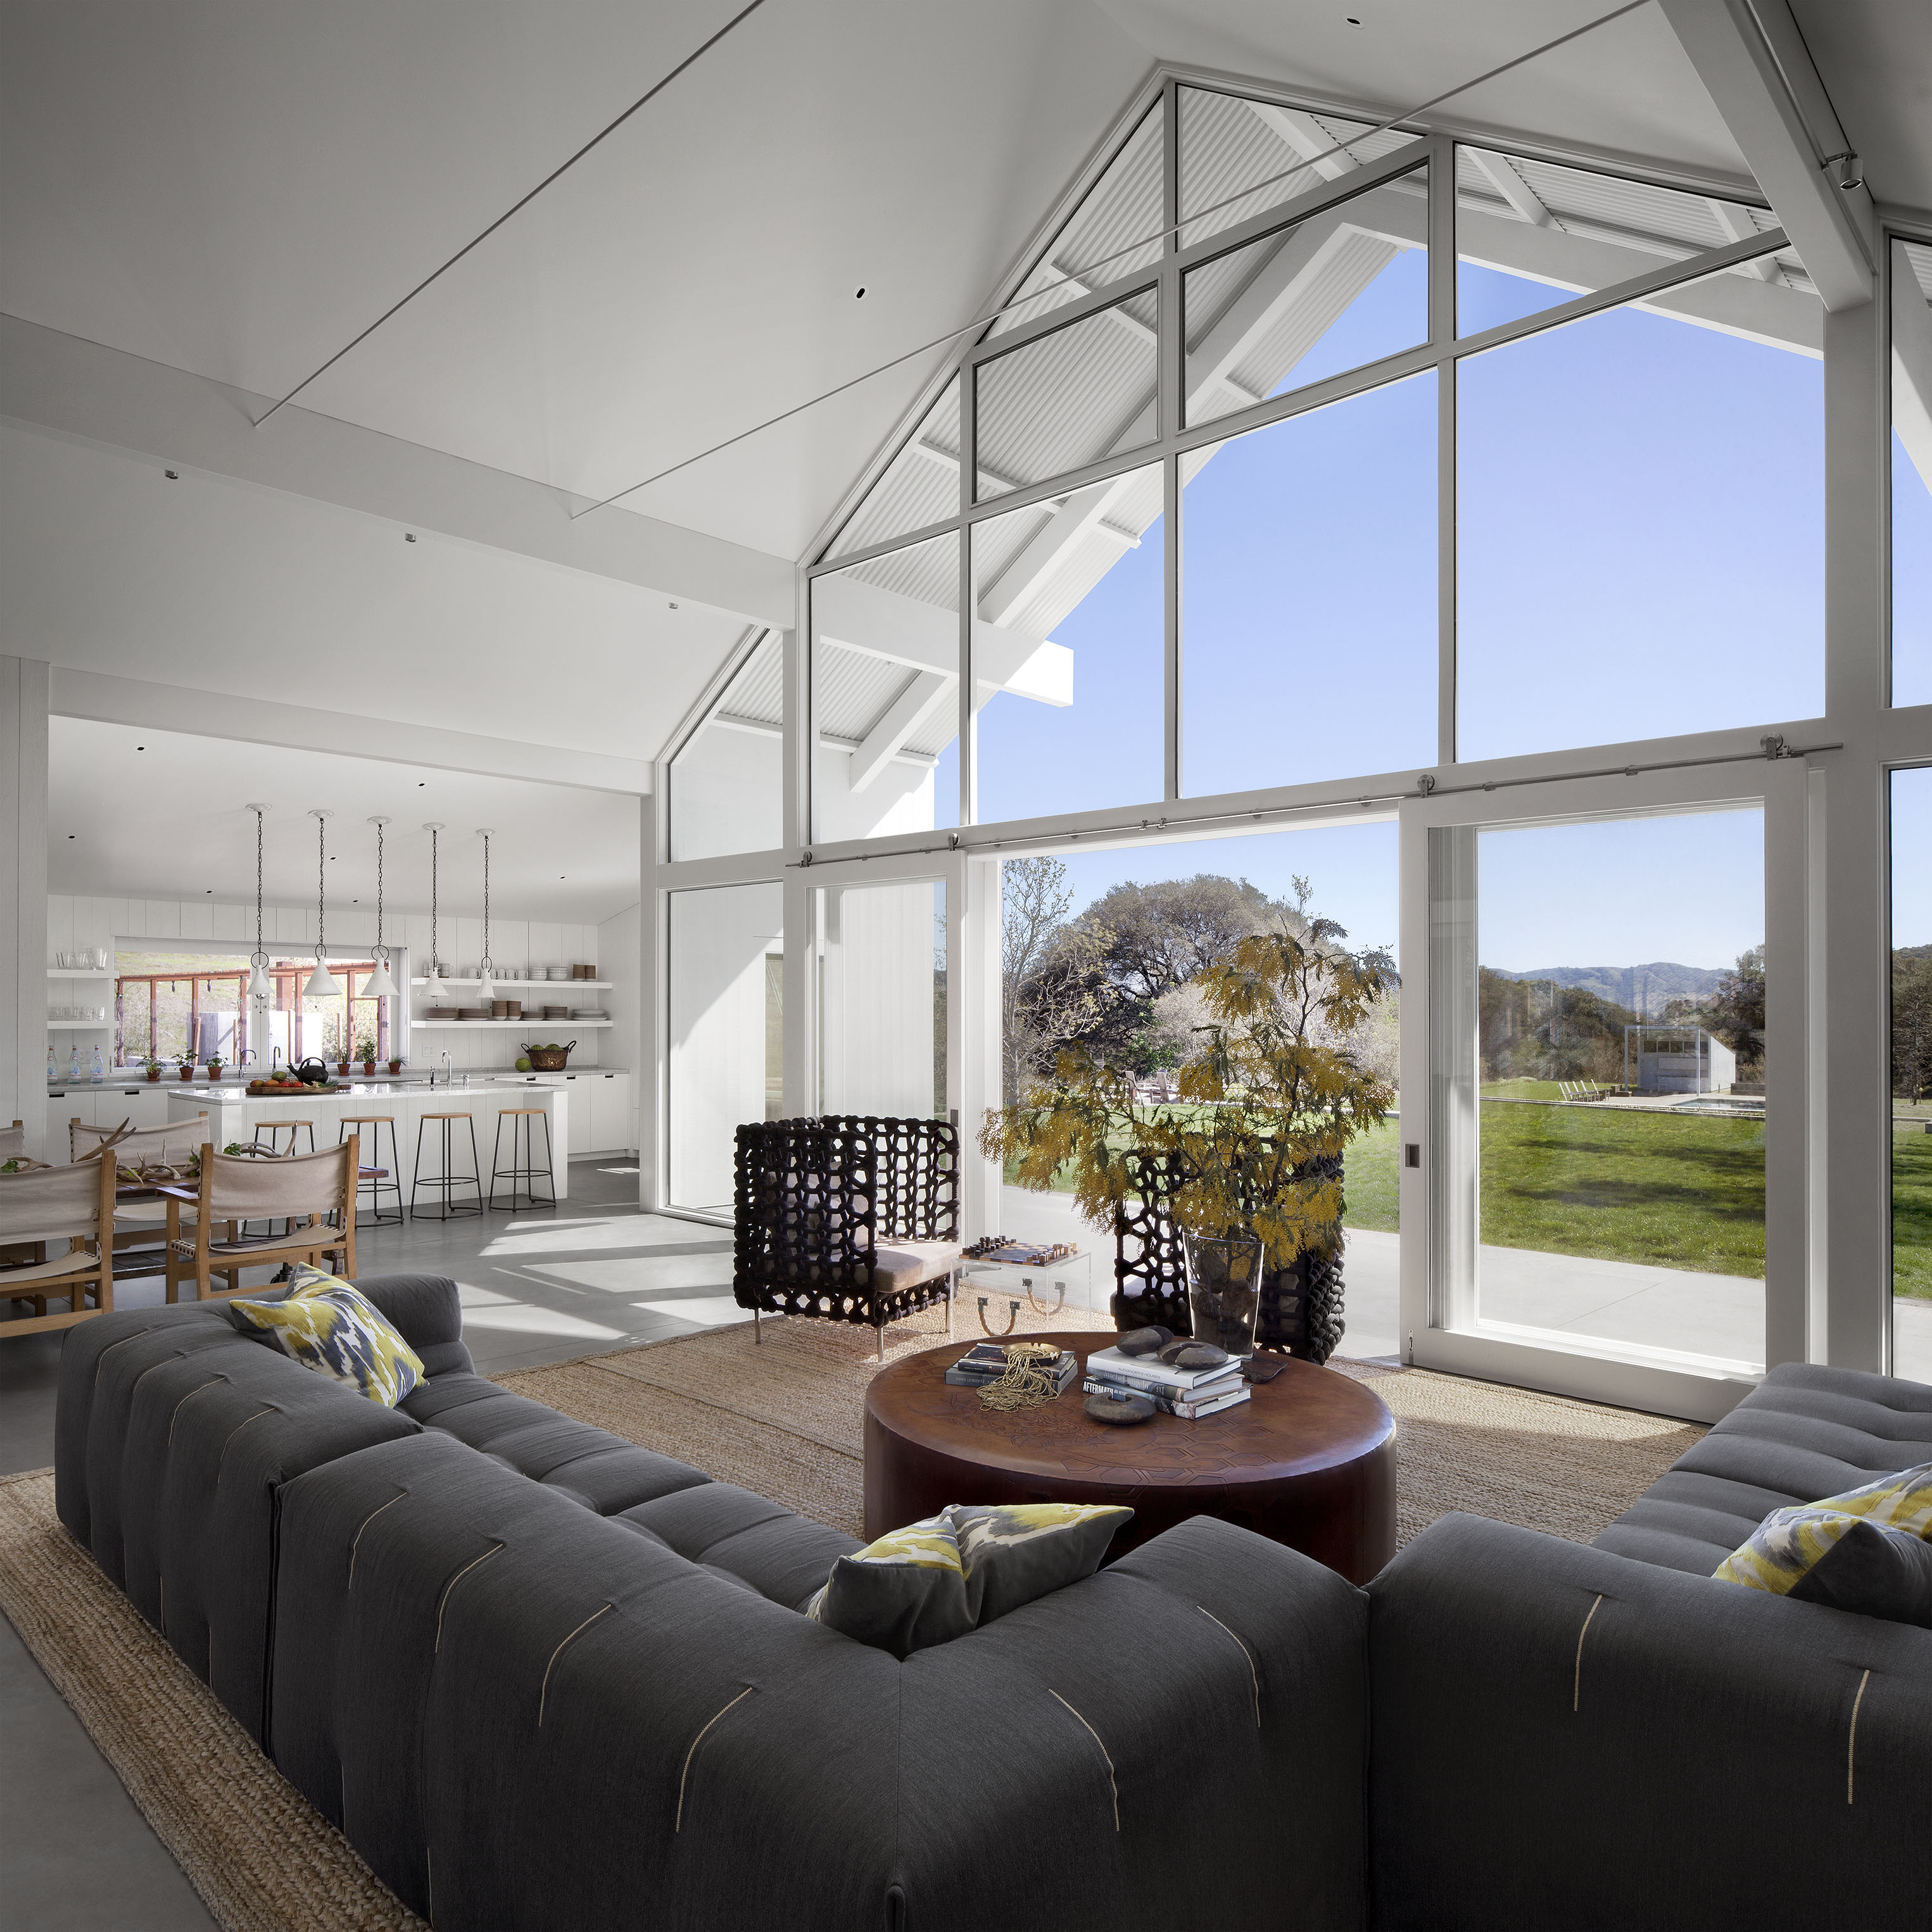 The central, open design body of the home situates a sprawling living room beneath full height glass panels, allowing for expansive views and a blending of indoor and outdoor visual spaces. Large sliding panels allow for fresh air and full access to the patio.